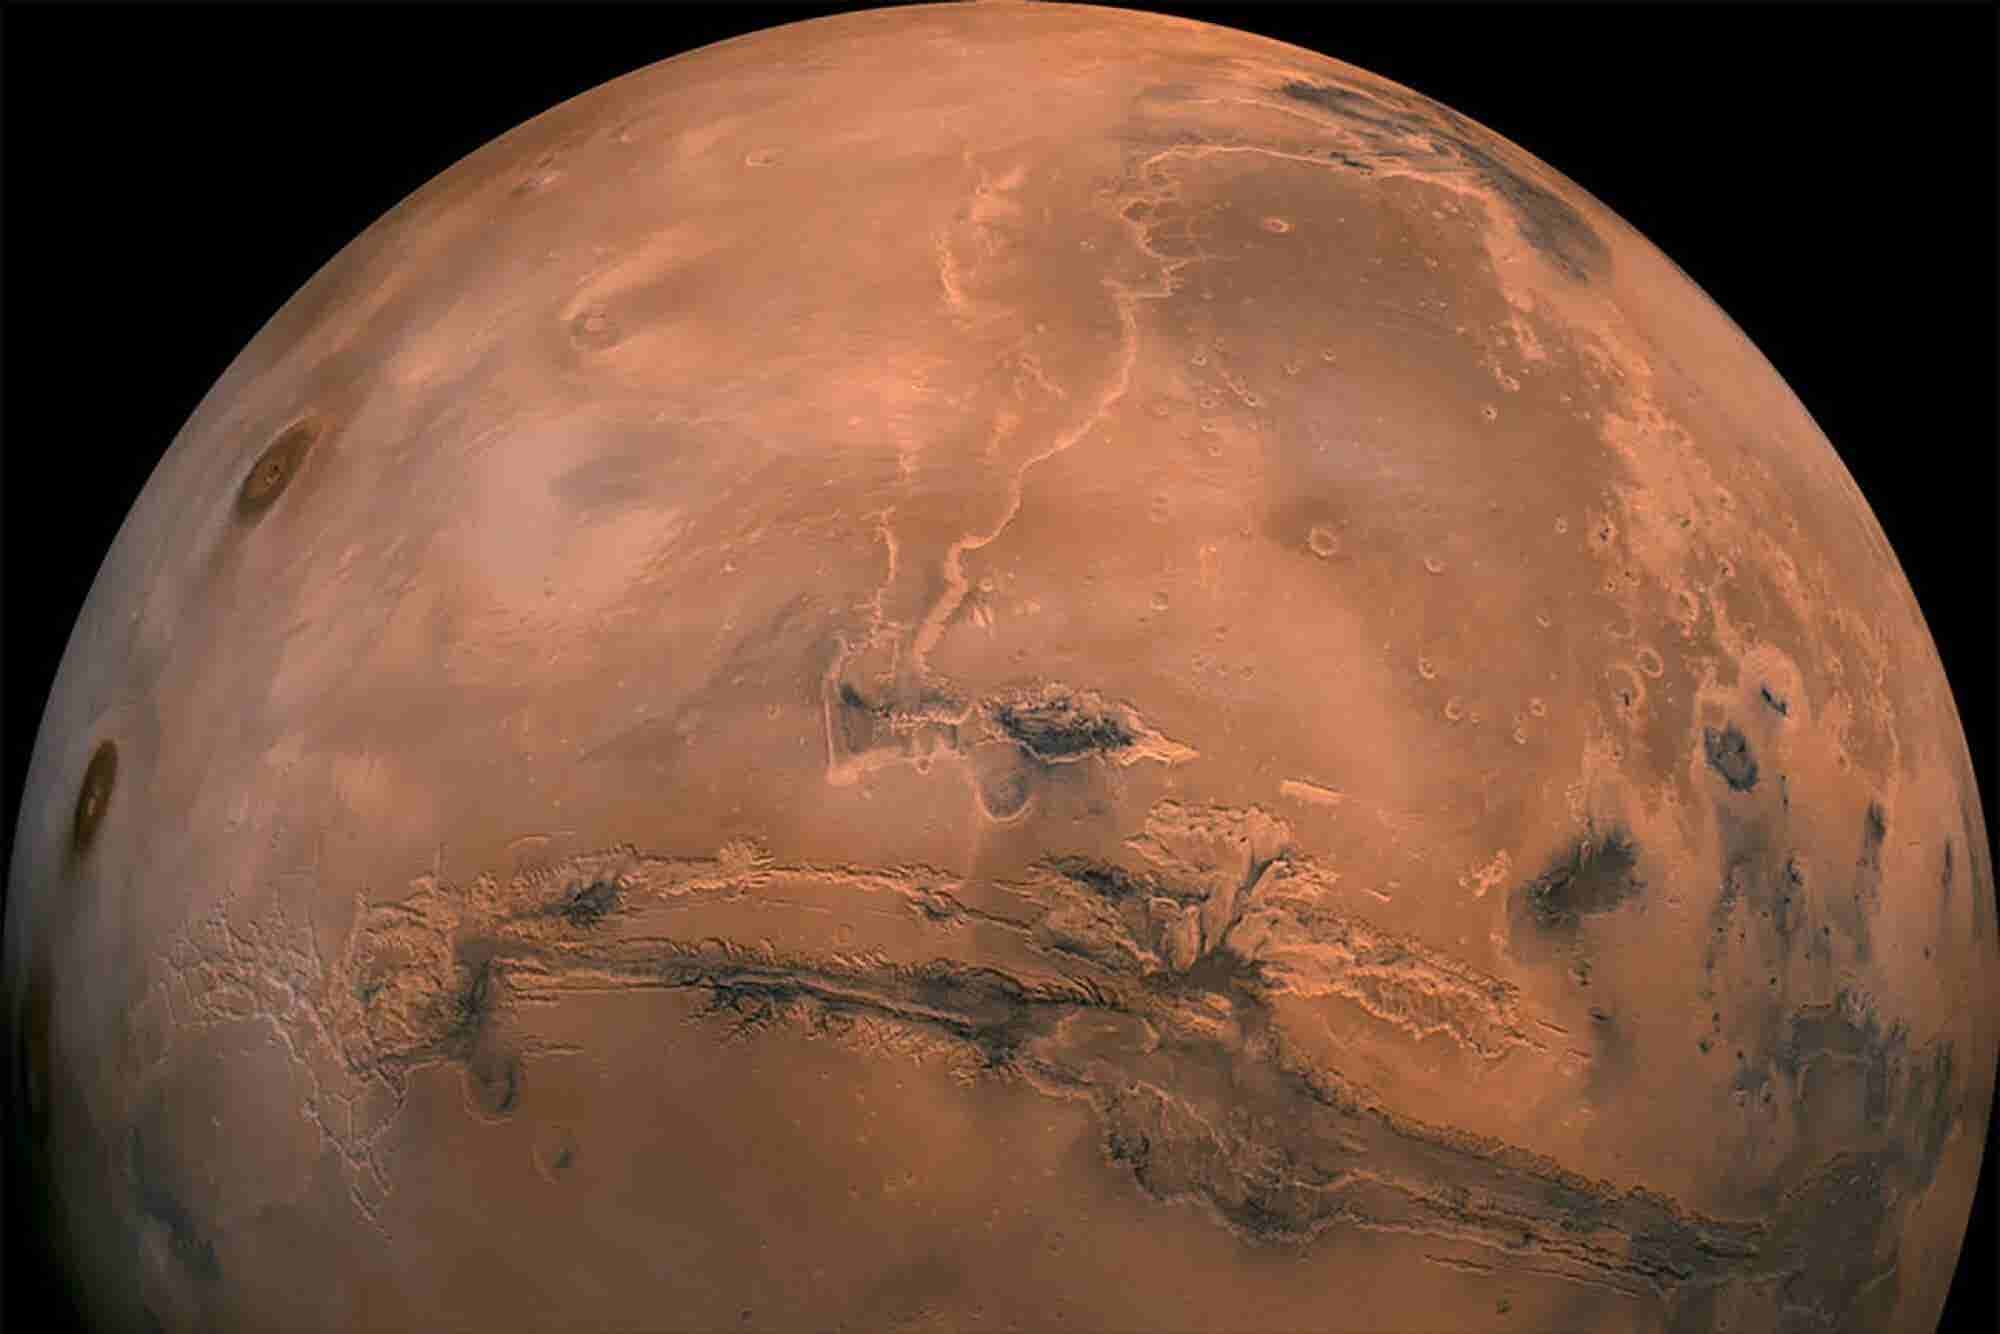 NASA Wants Your Ideas for Habitats on Mars